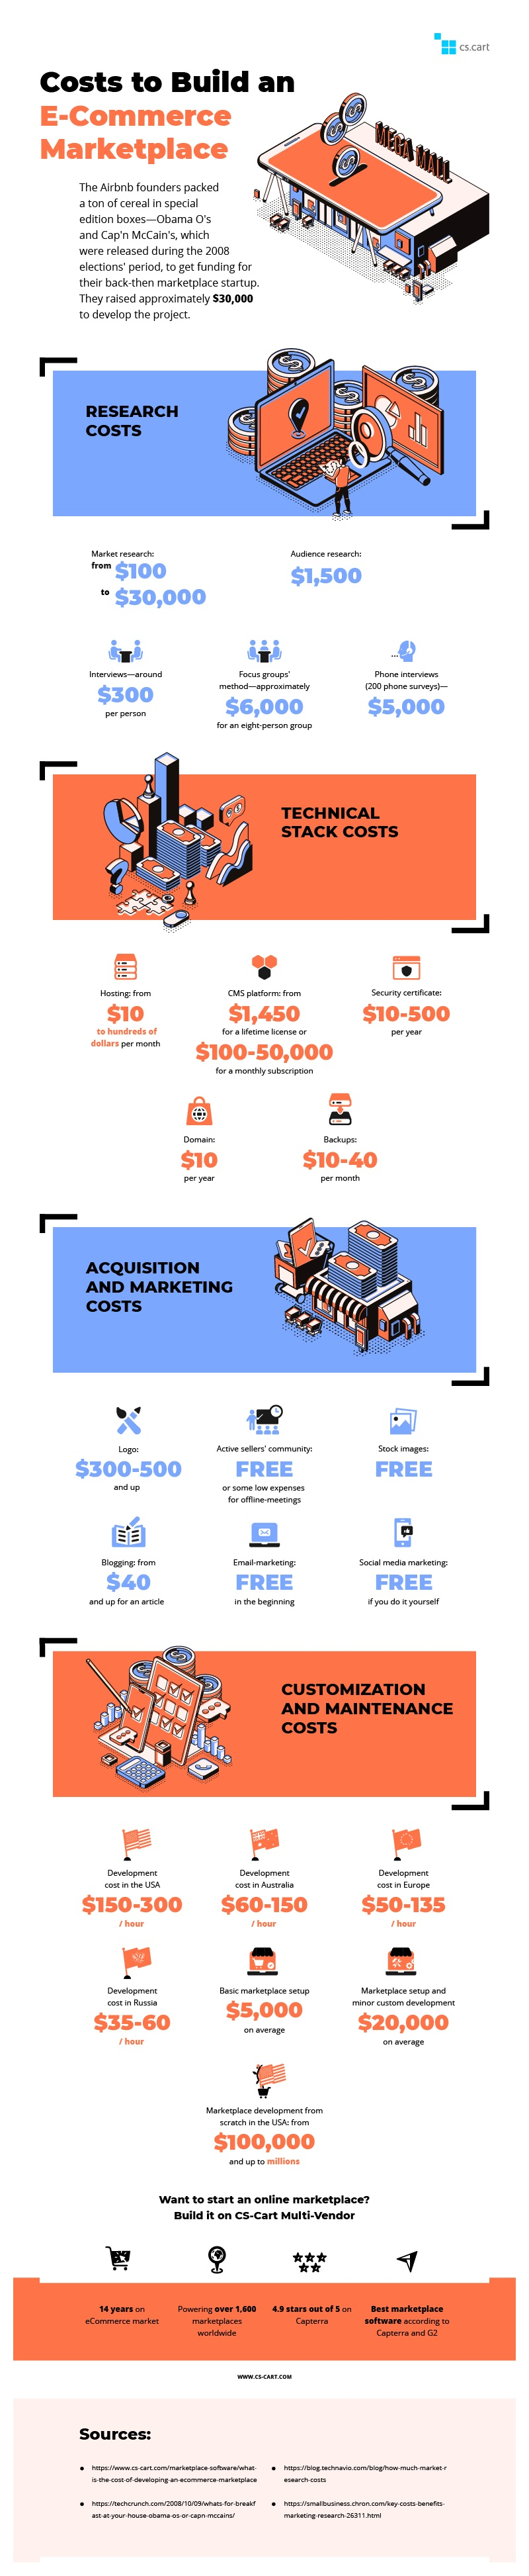 Costs to Build an E-Commerce Marketplace